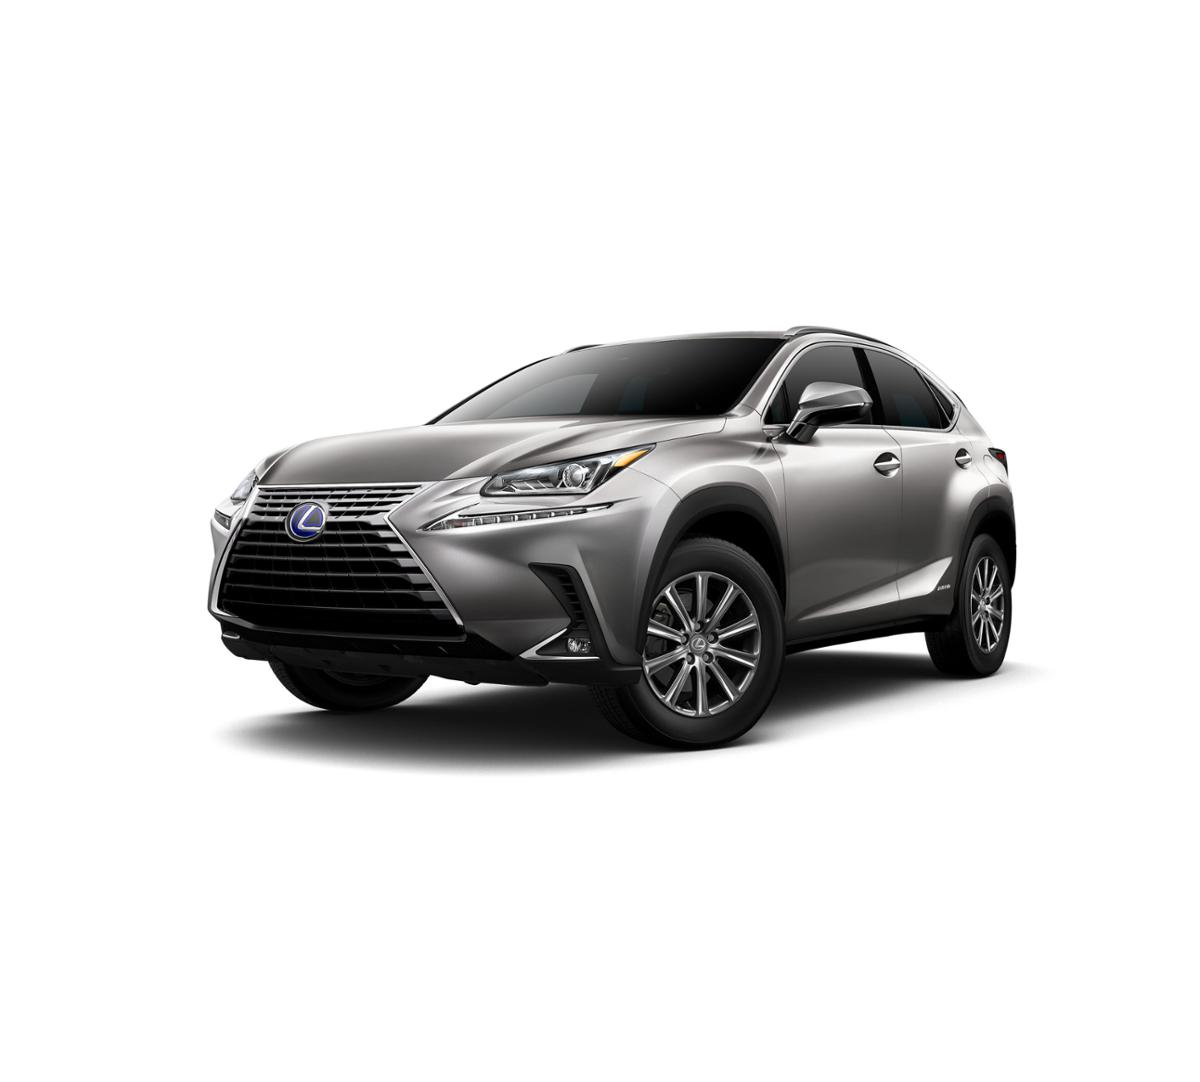 2018 Lexus NX 300h Vehicle Photo in Santa Barbara, CA 93105